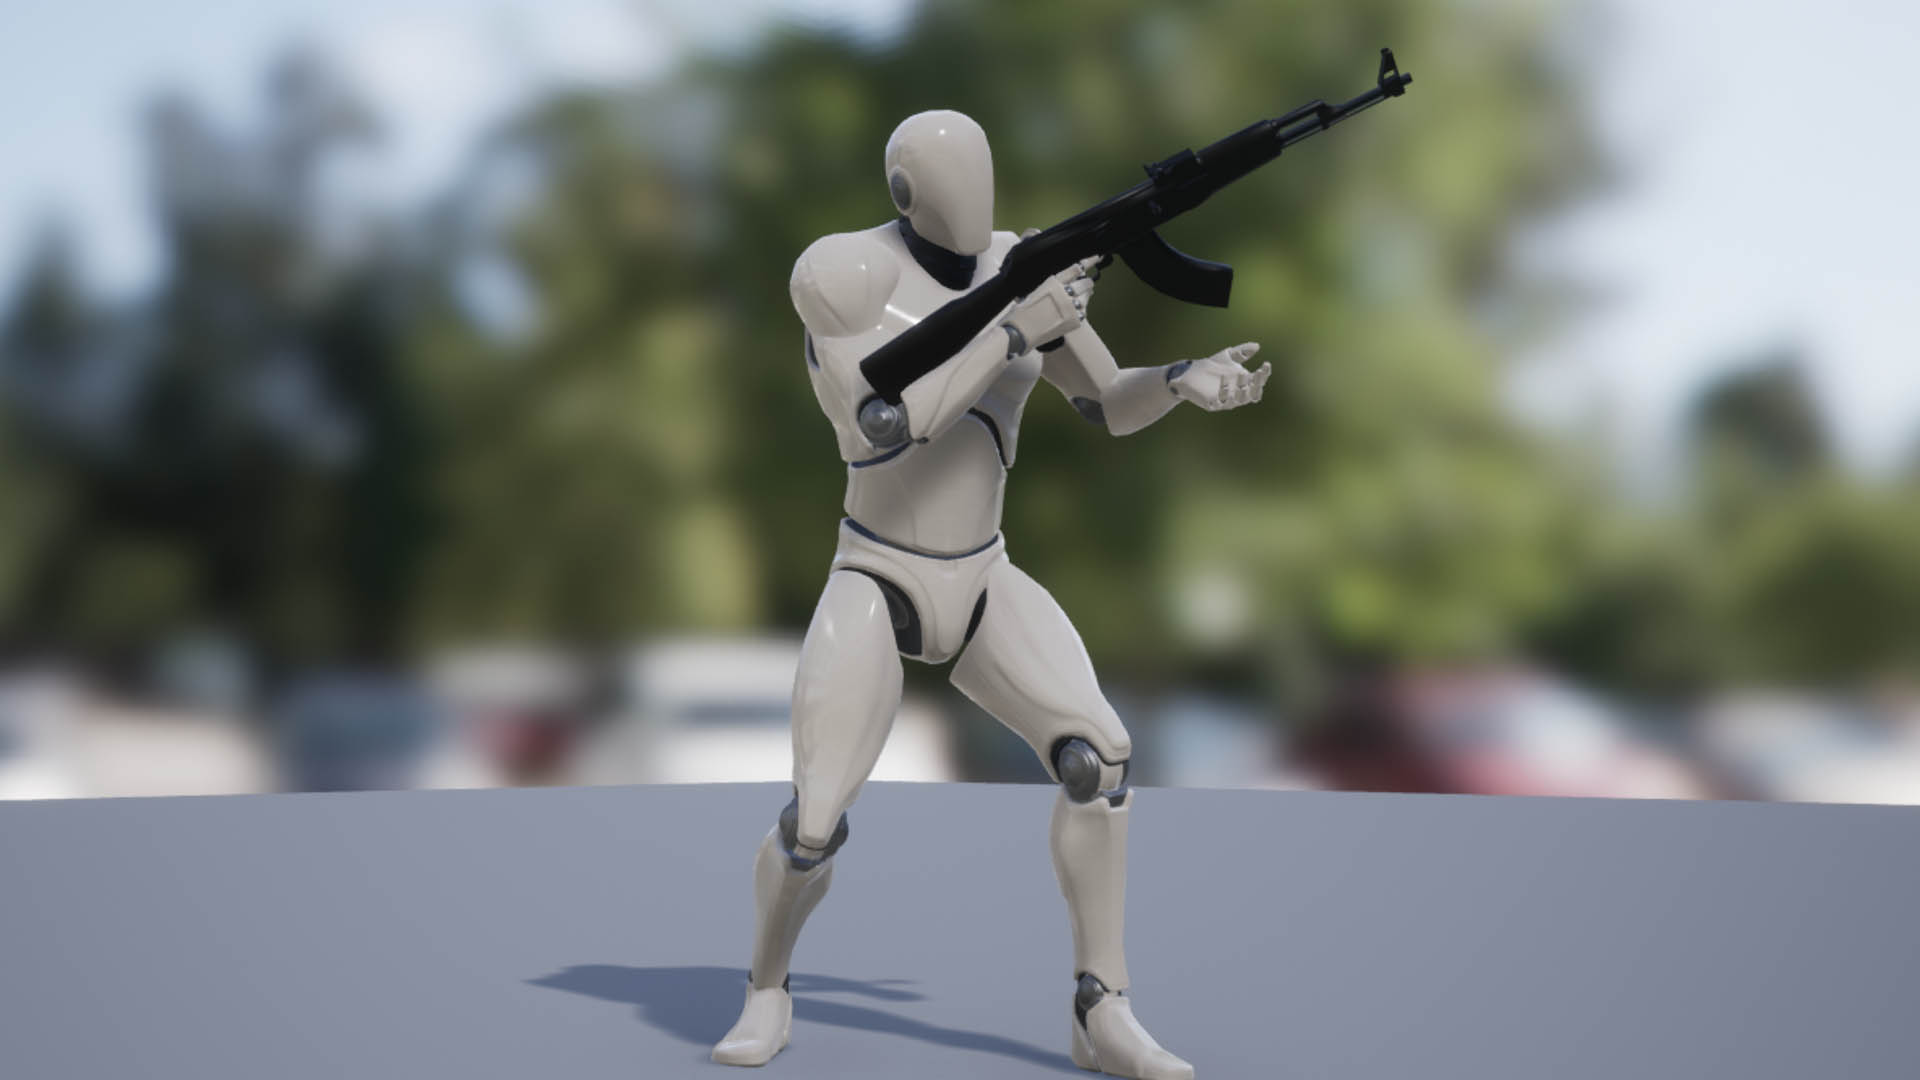 Dynamic Rifle Animset by Filmstorm in Animations - UE4